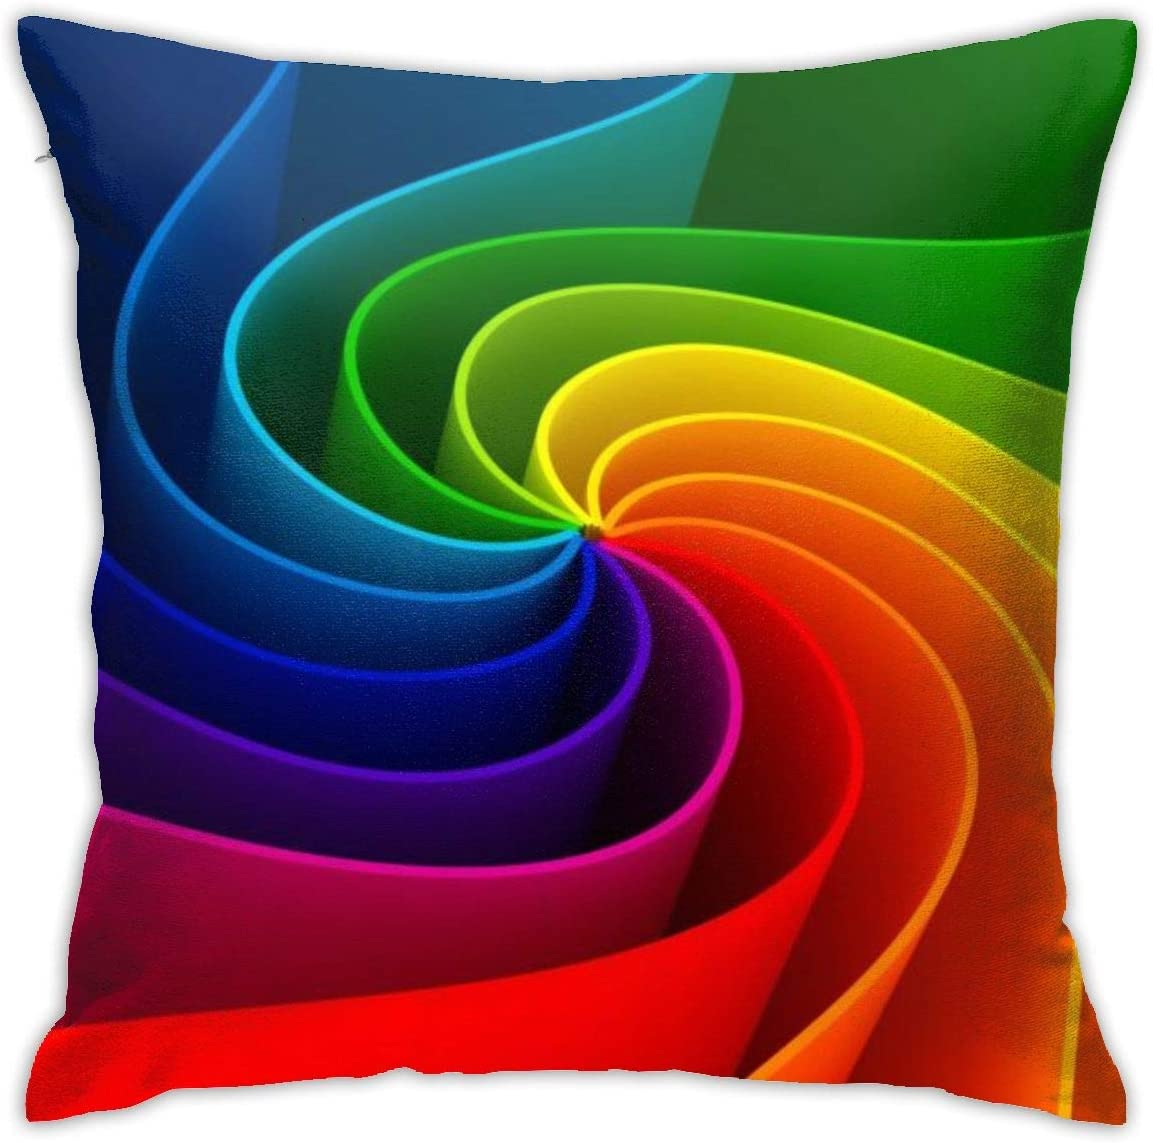 F.G. MINGSHA Throw Pillow Cover Cool Visual Effects Pillow Cases for Home Decor Design Set Cushion Case for Sofa Bedroom Car Standard Size 18 x 18 Inch